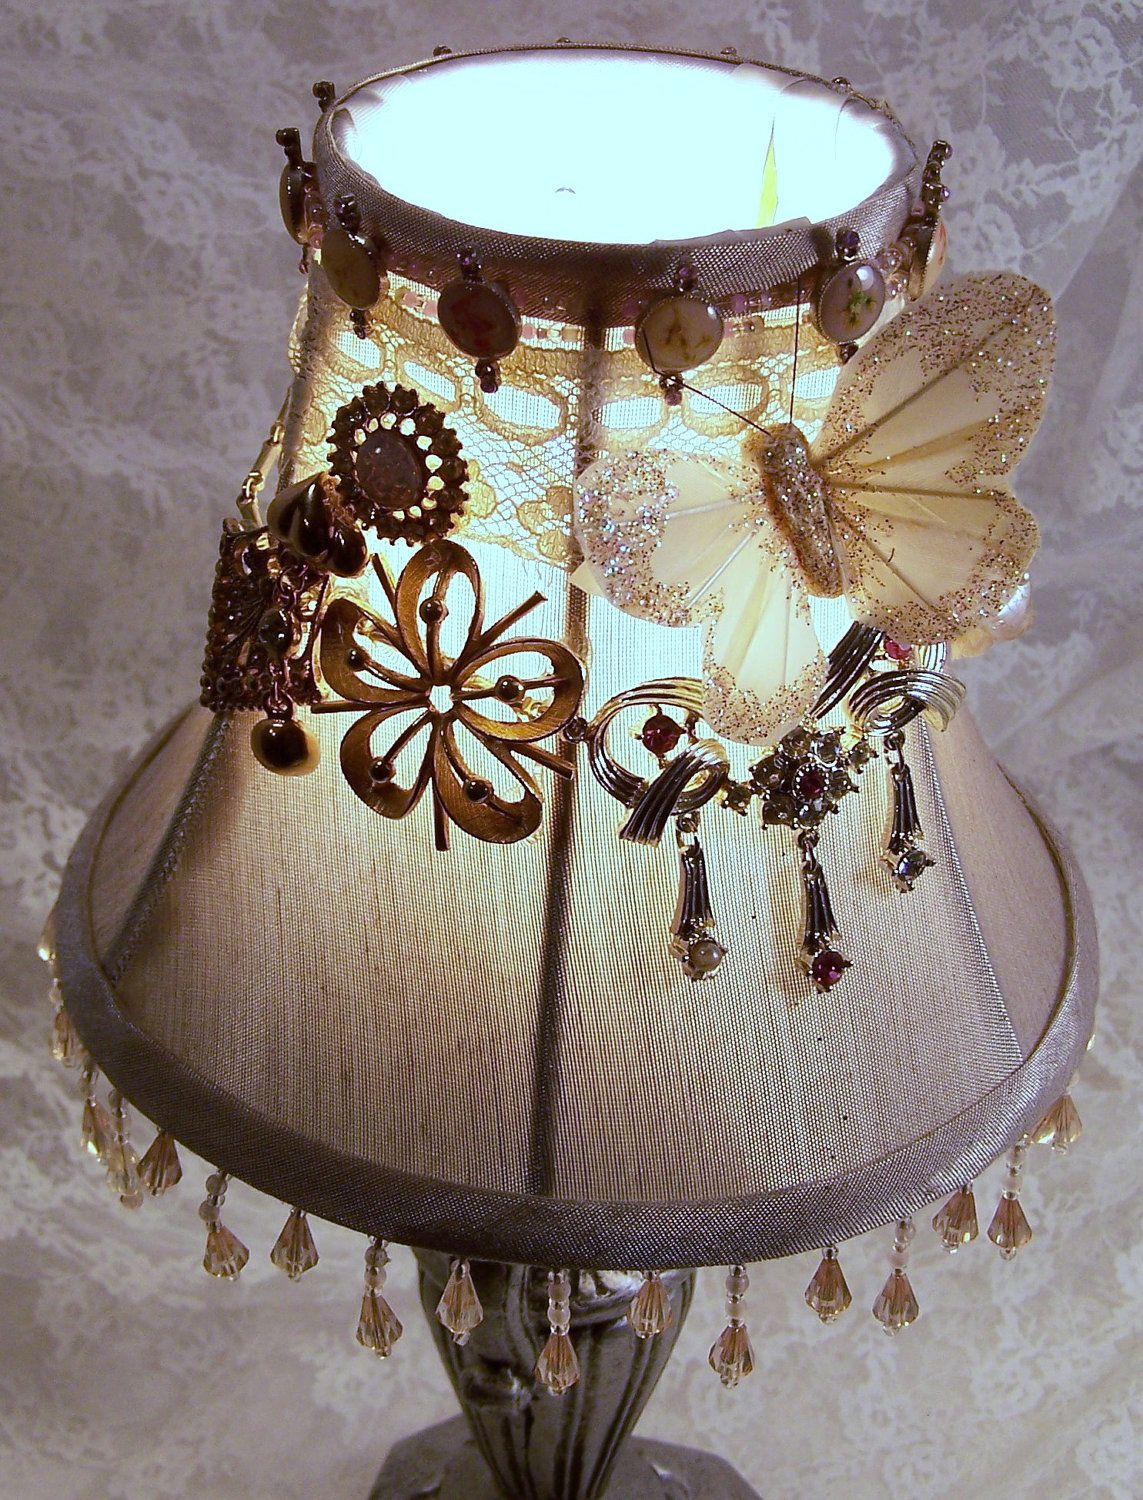 Embellished jeweled night light lamp shade rhinestone jewelry embellished jeweled night light lamp shade rhinestone jewelry butterfly wedding 6500 via etsy aloadofball Images